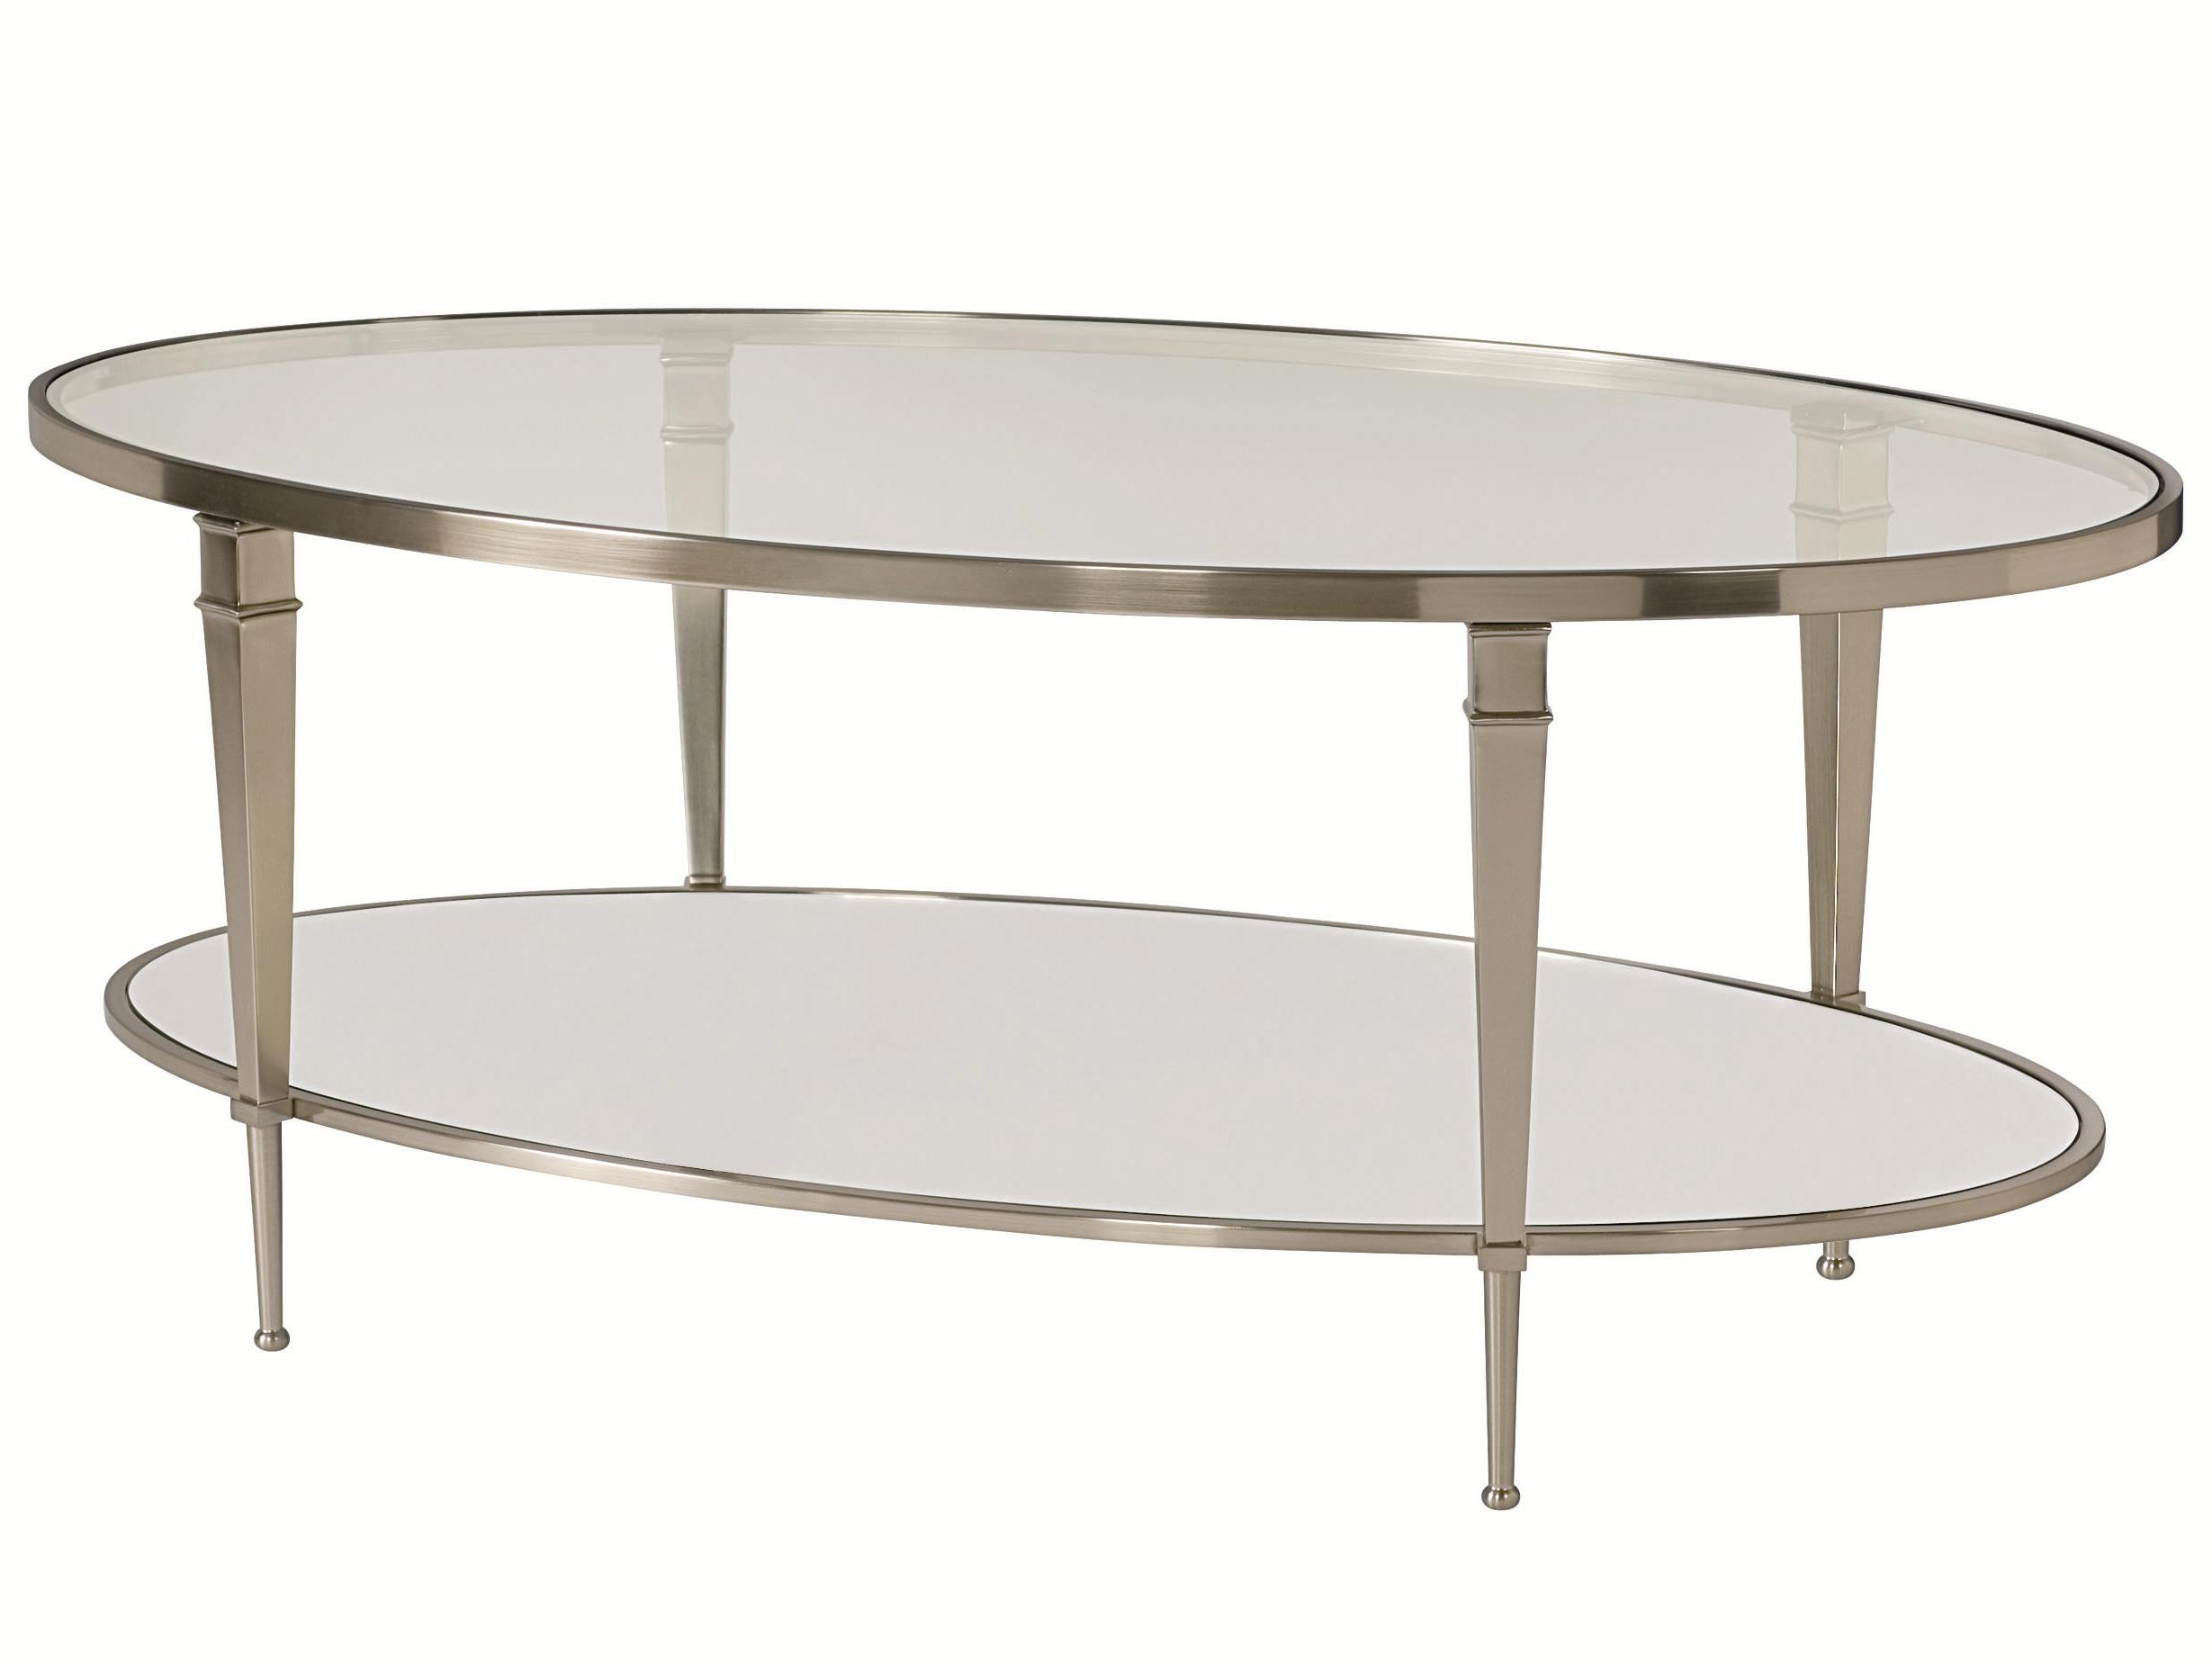 Oval Satin Nickel Antique Mirror Finish Cocktail Table by Hammary